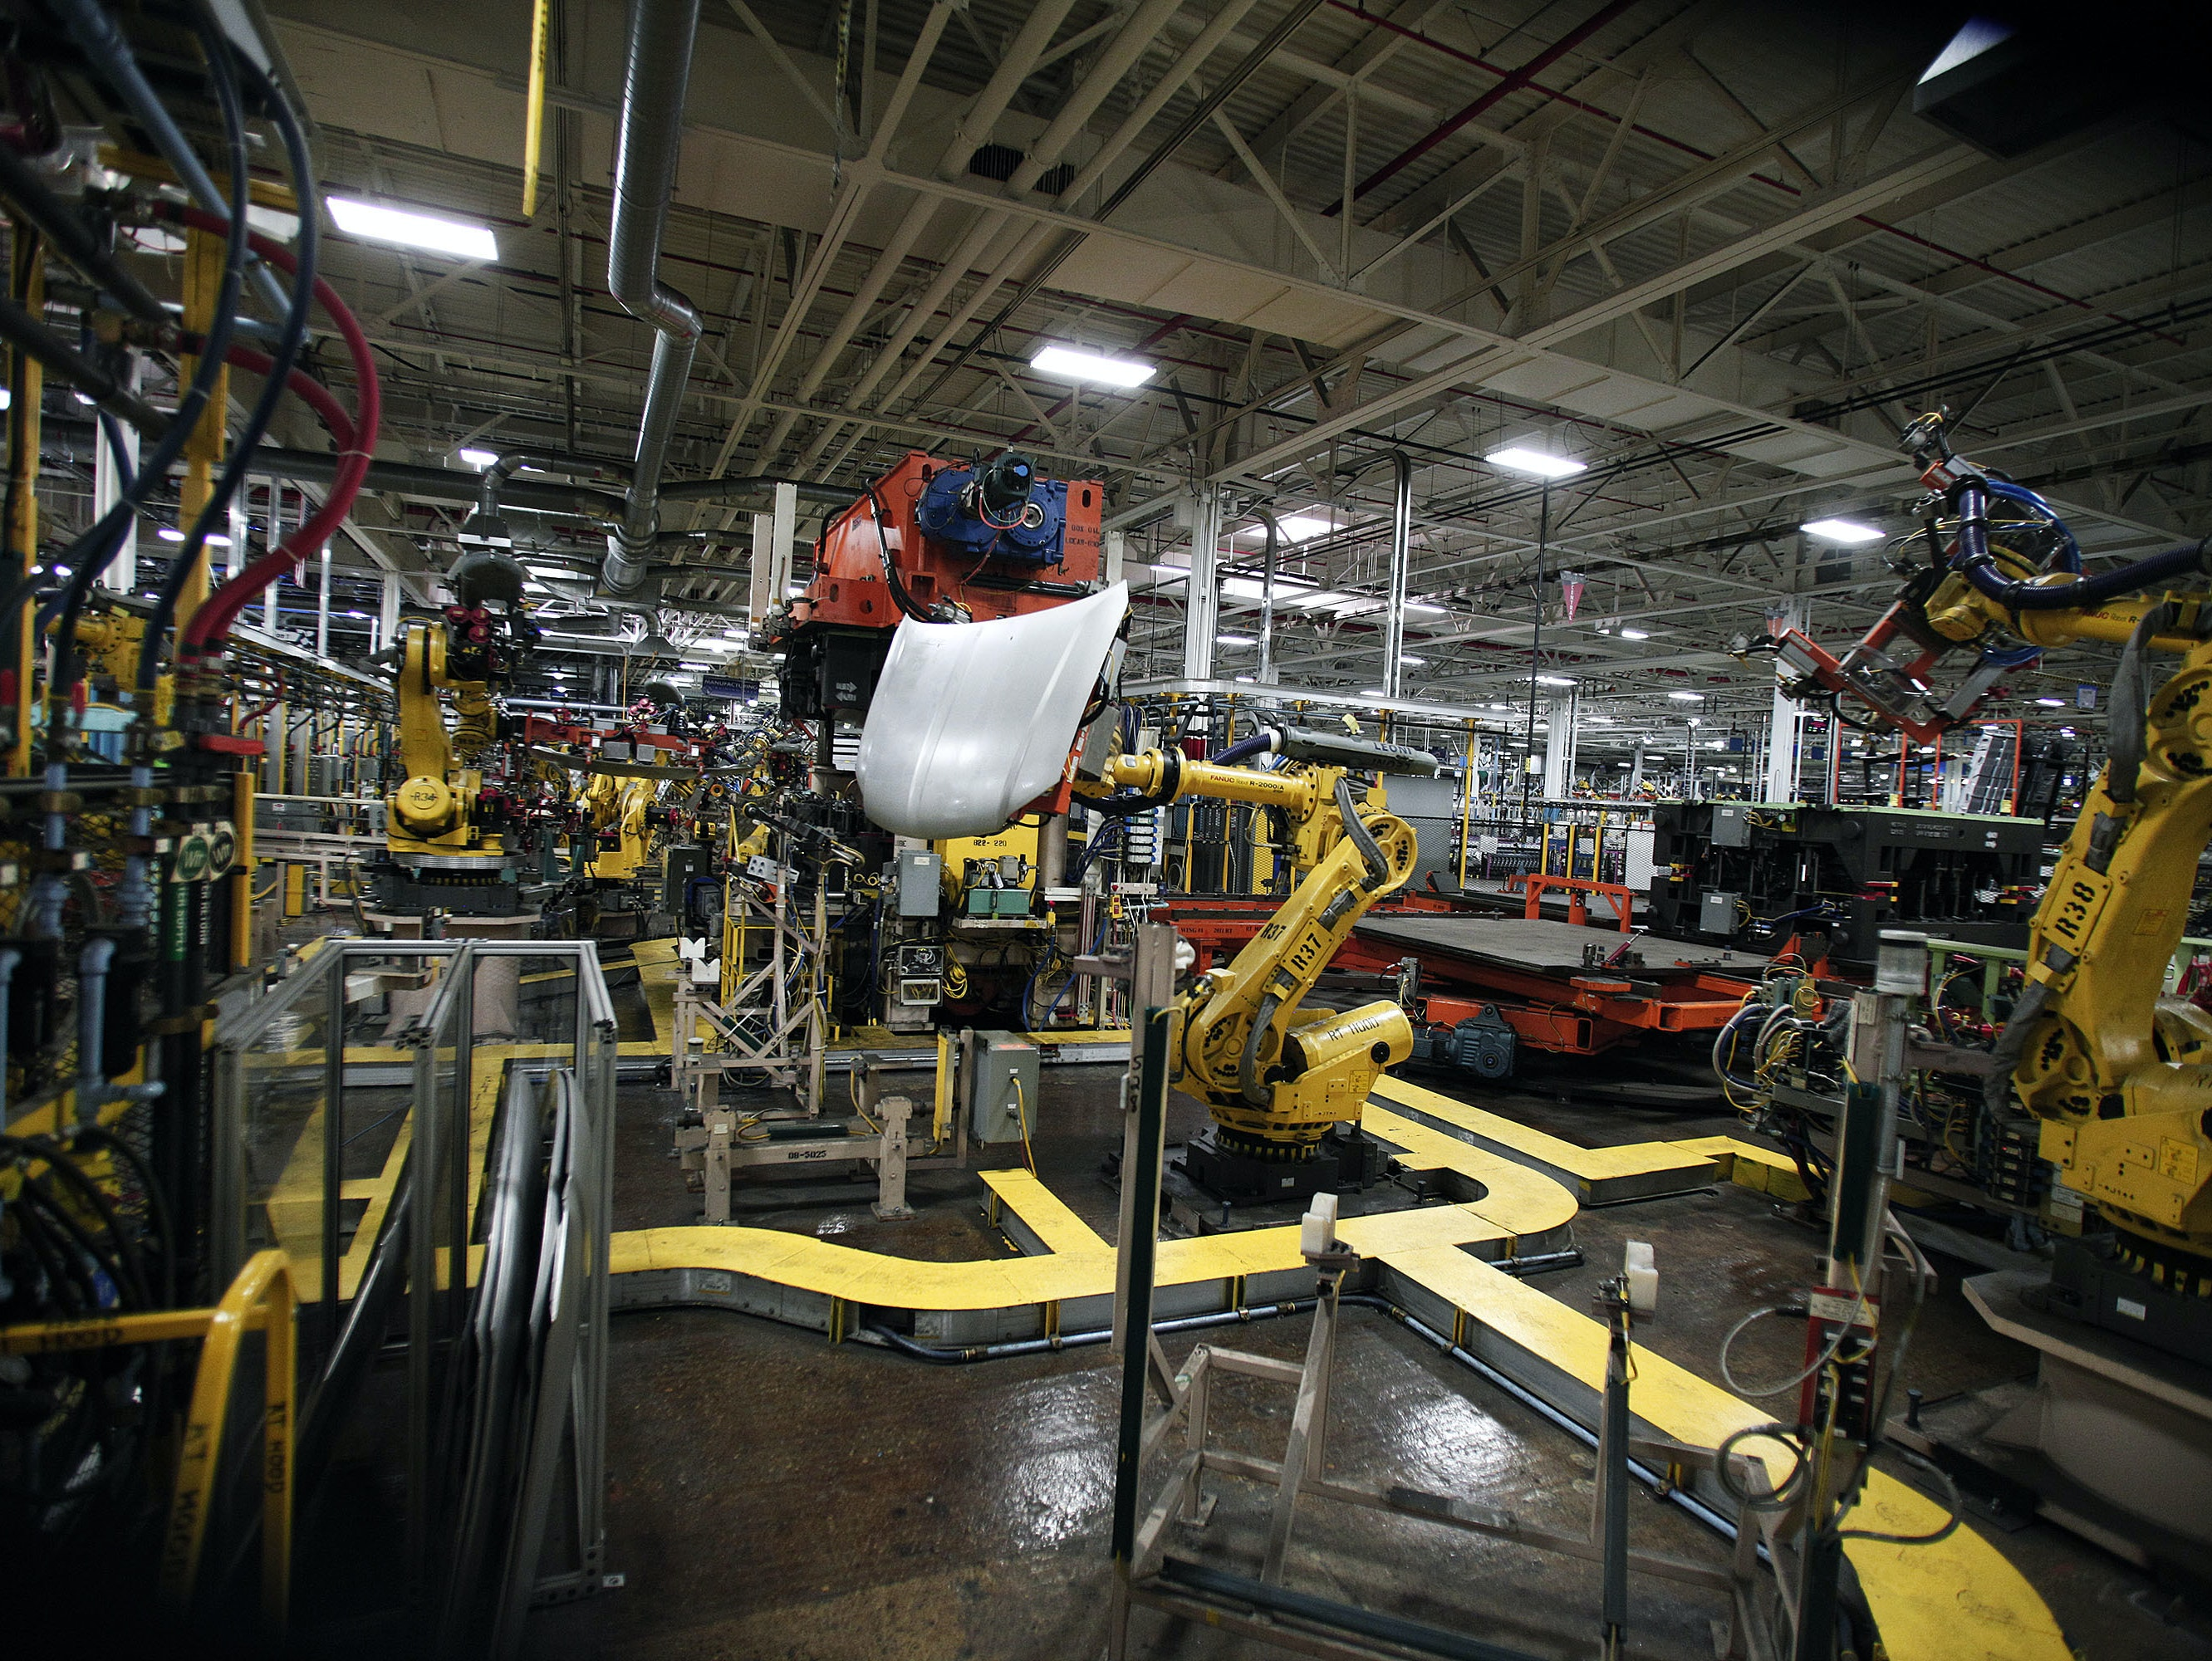 Robots Will Bring Manufacturing Back to Developed Countries